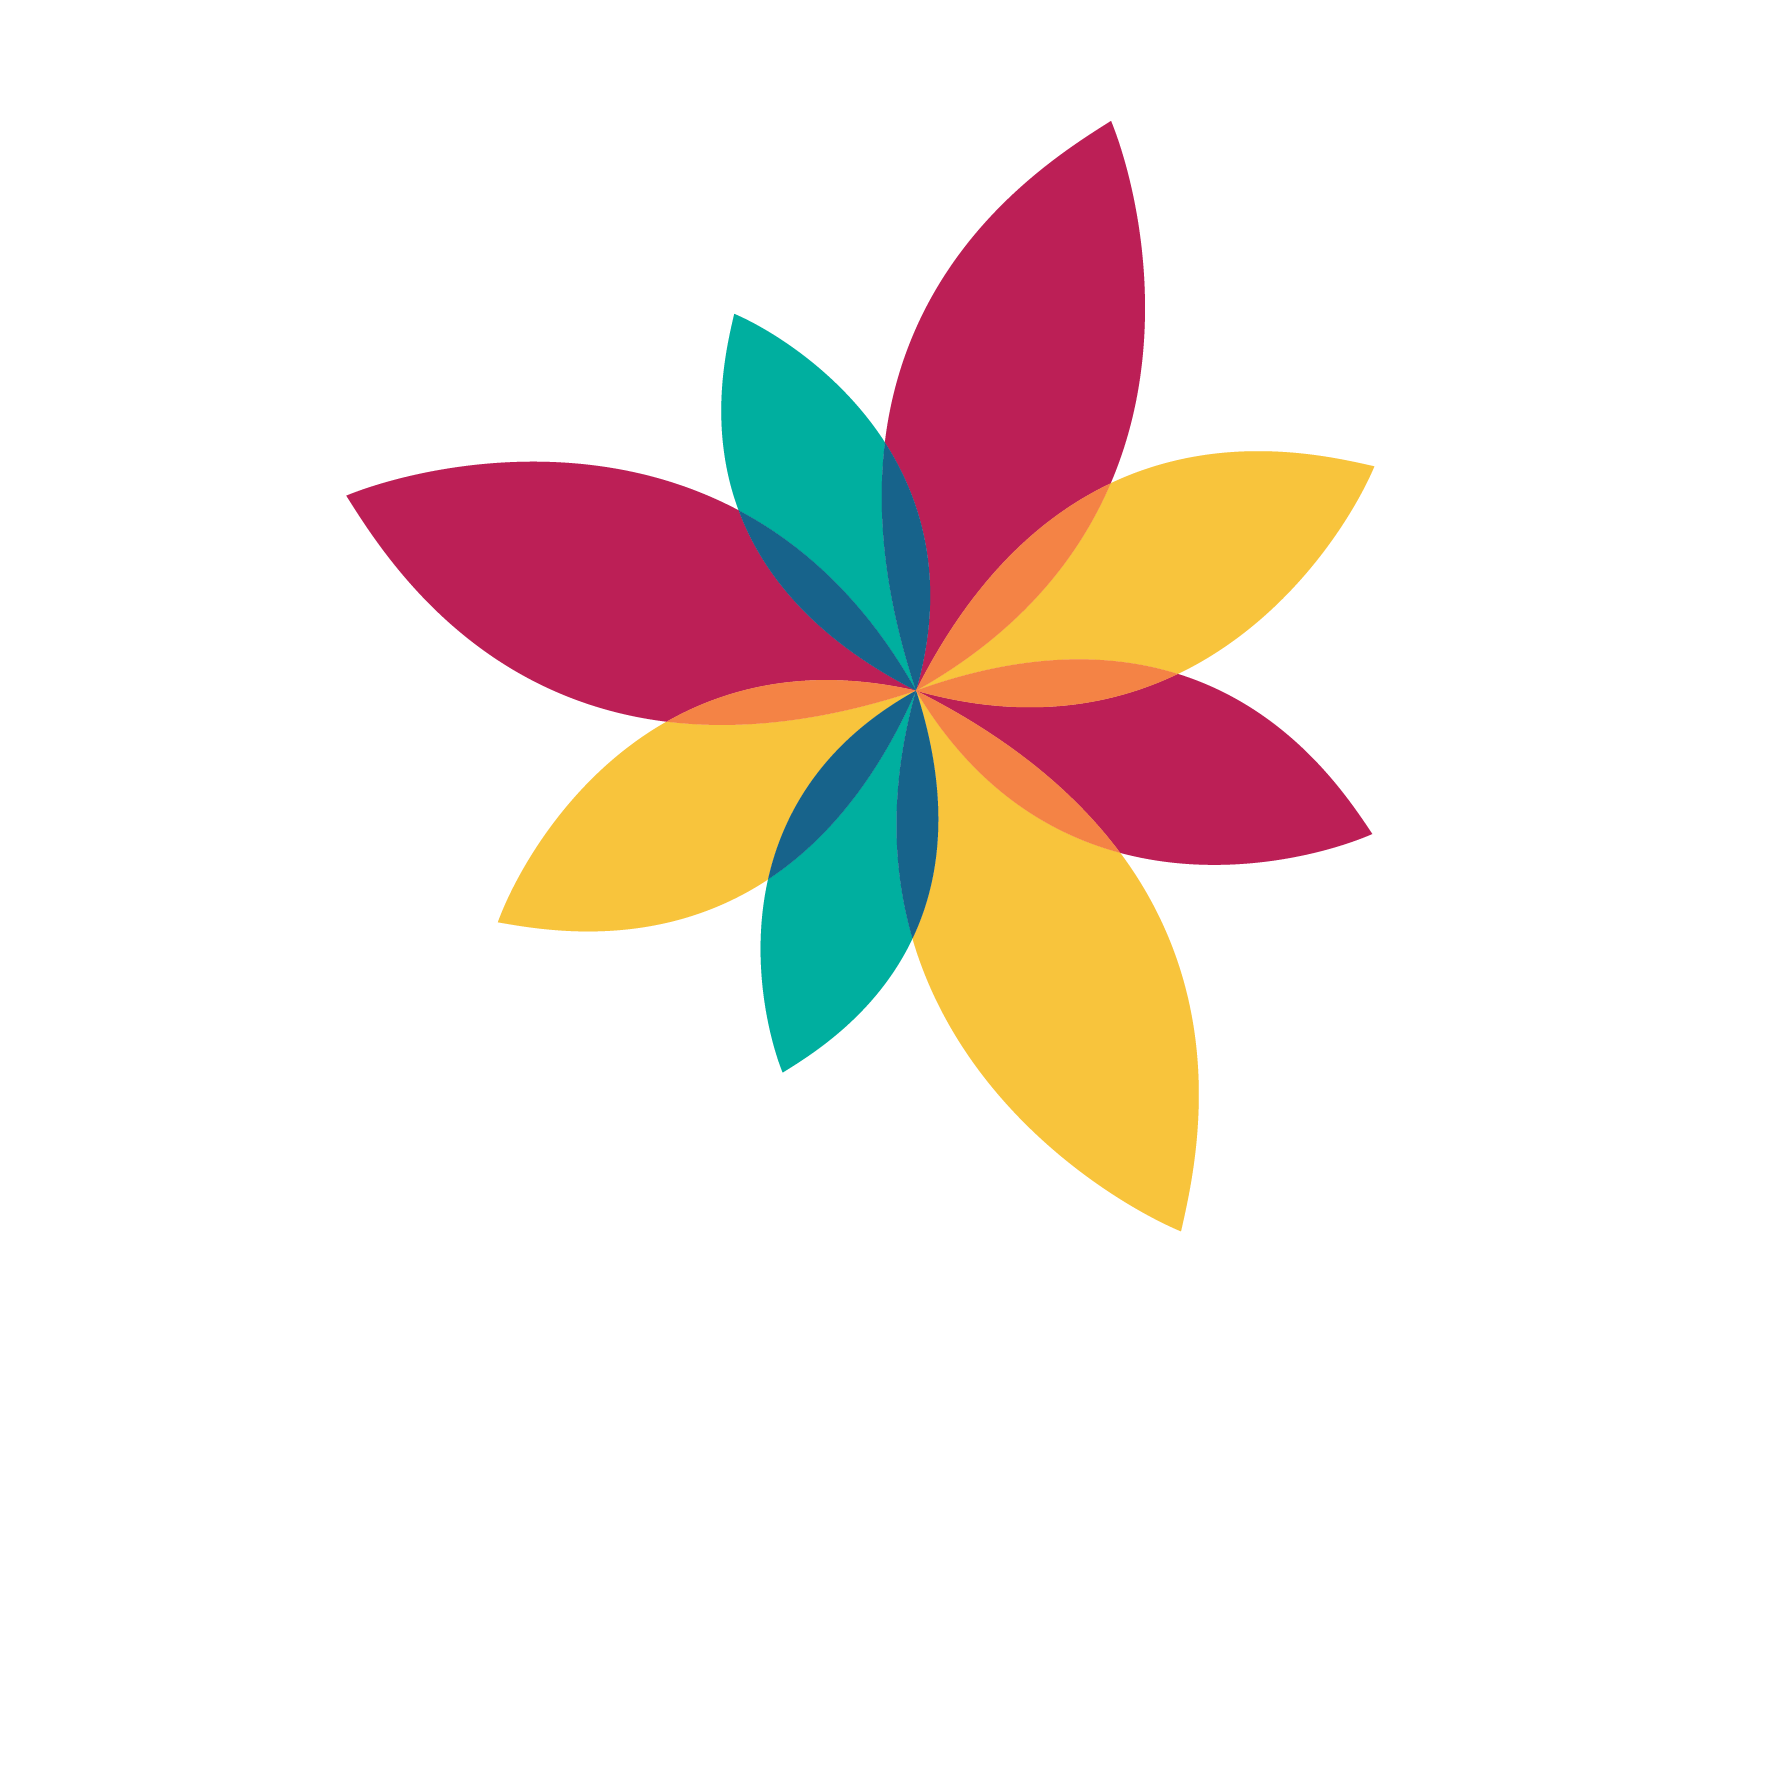 Reflections Holiday Parks